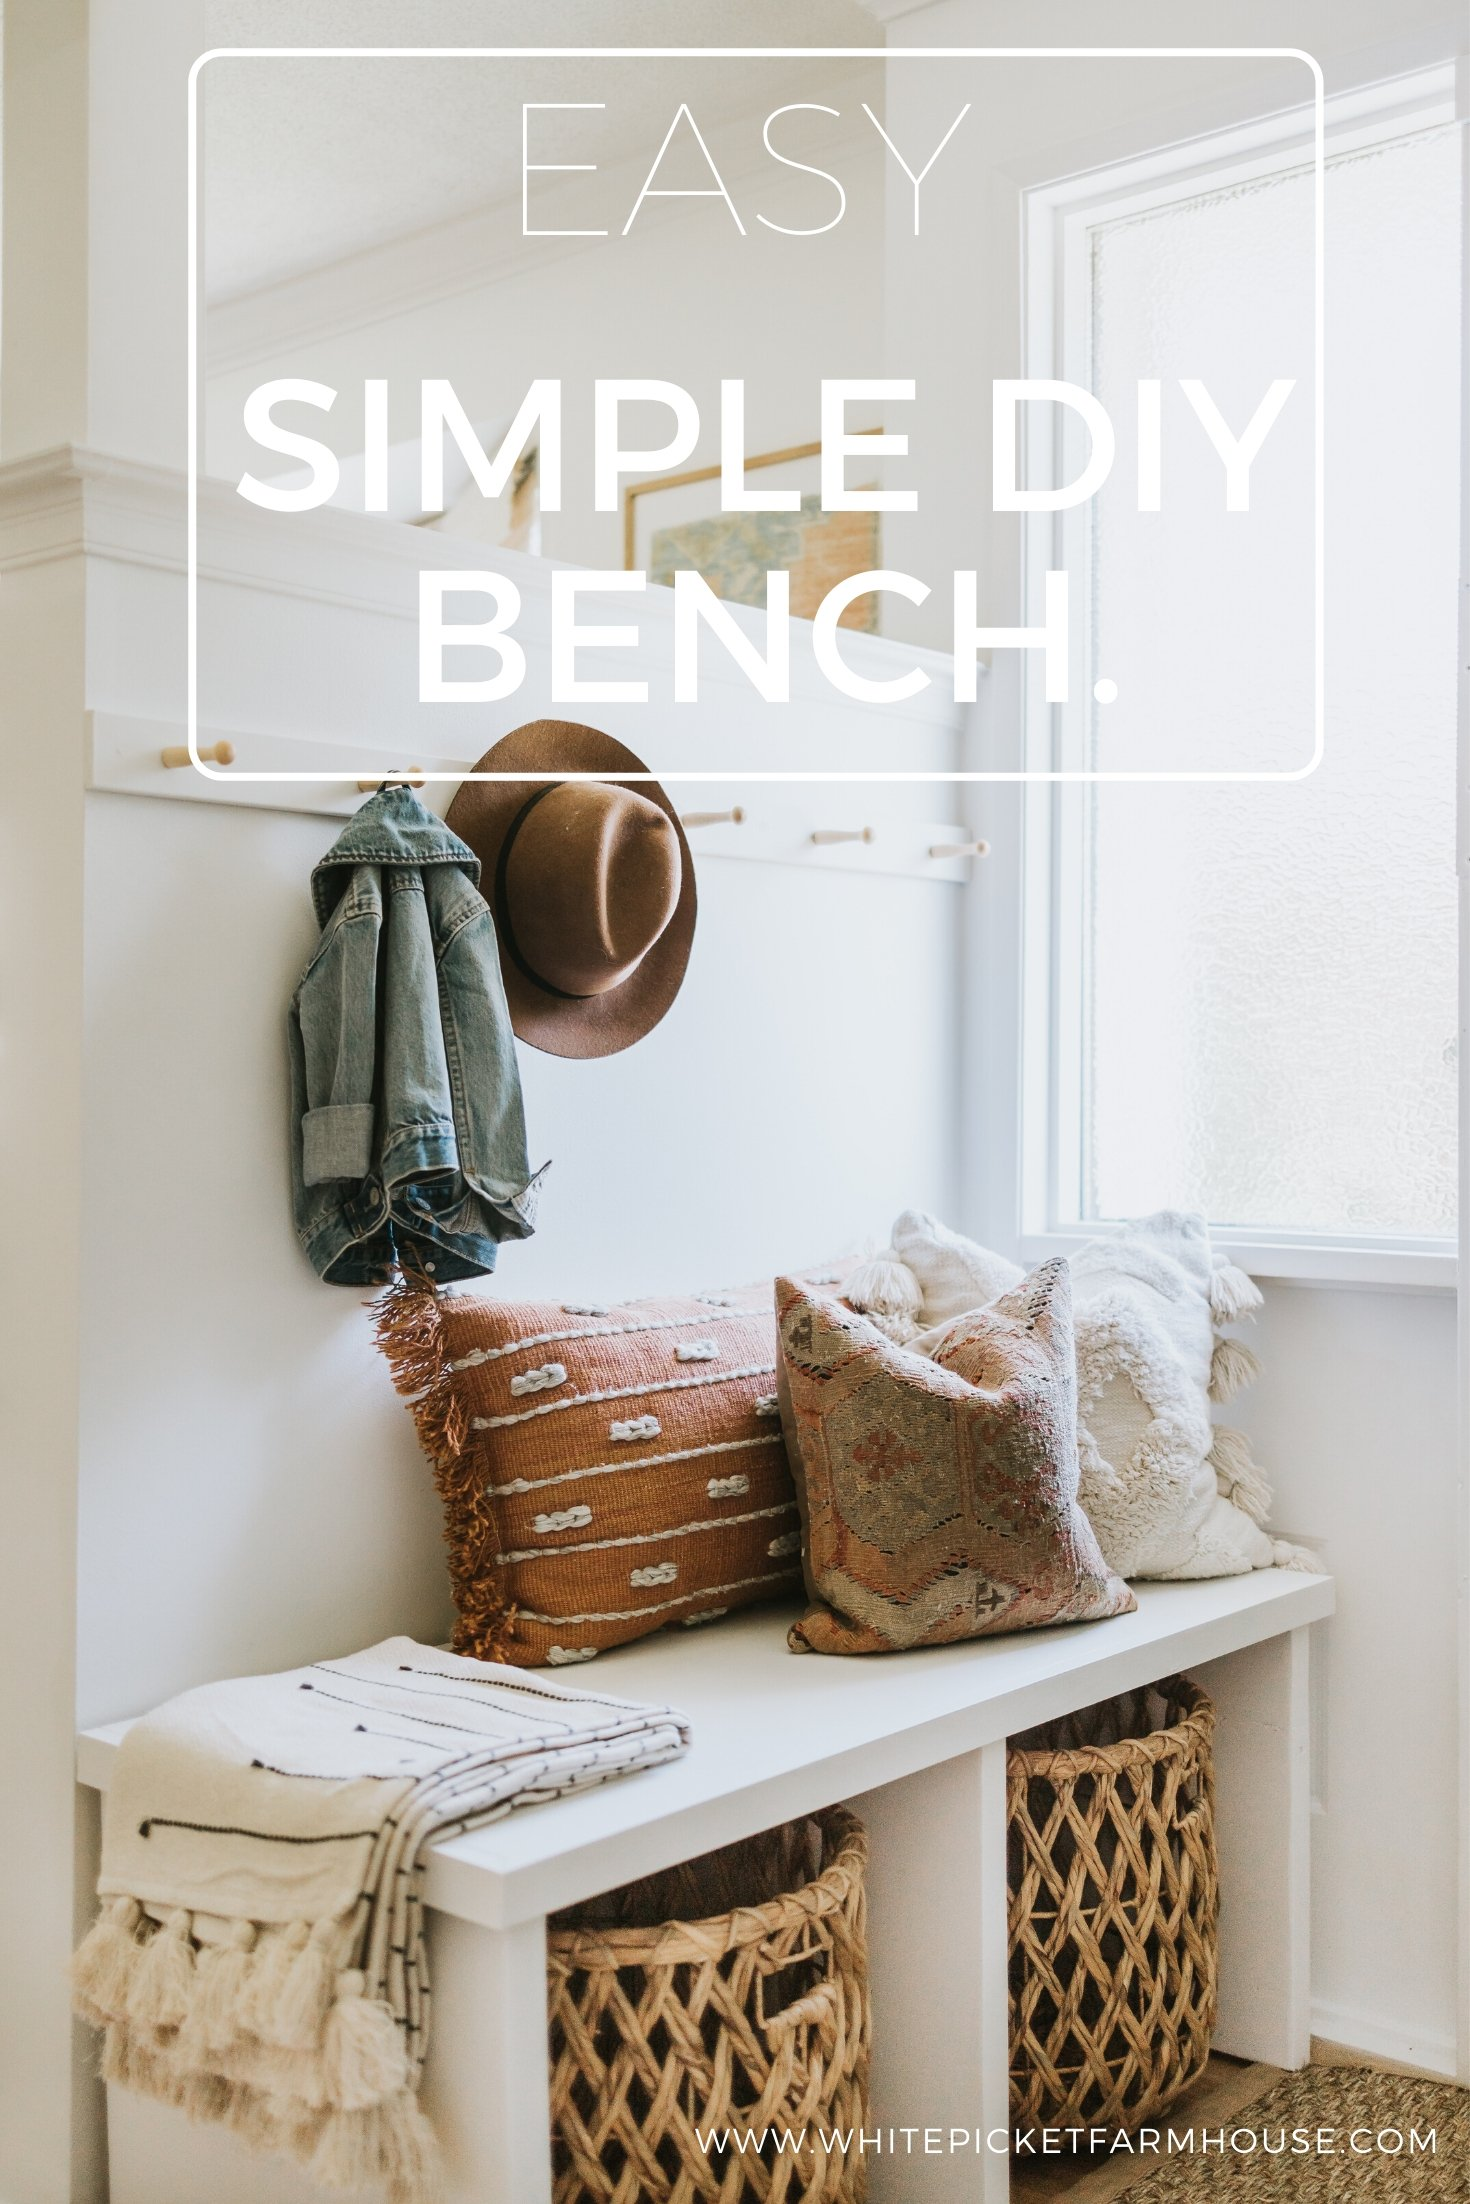 Simple DIY Bench. How We Made A Bench To Look Like A Modern Built-In In Our Rental. Super Easy and Beautiful Design With Storage!